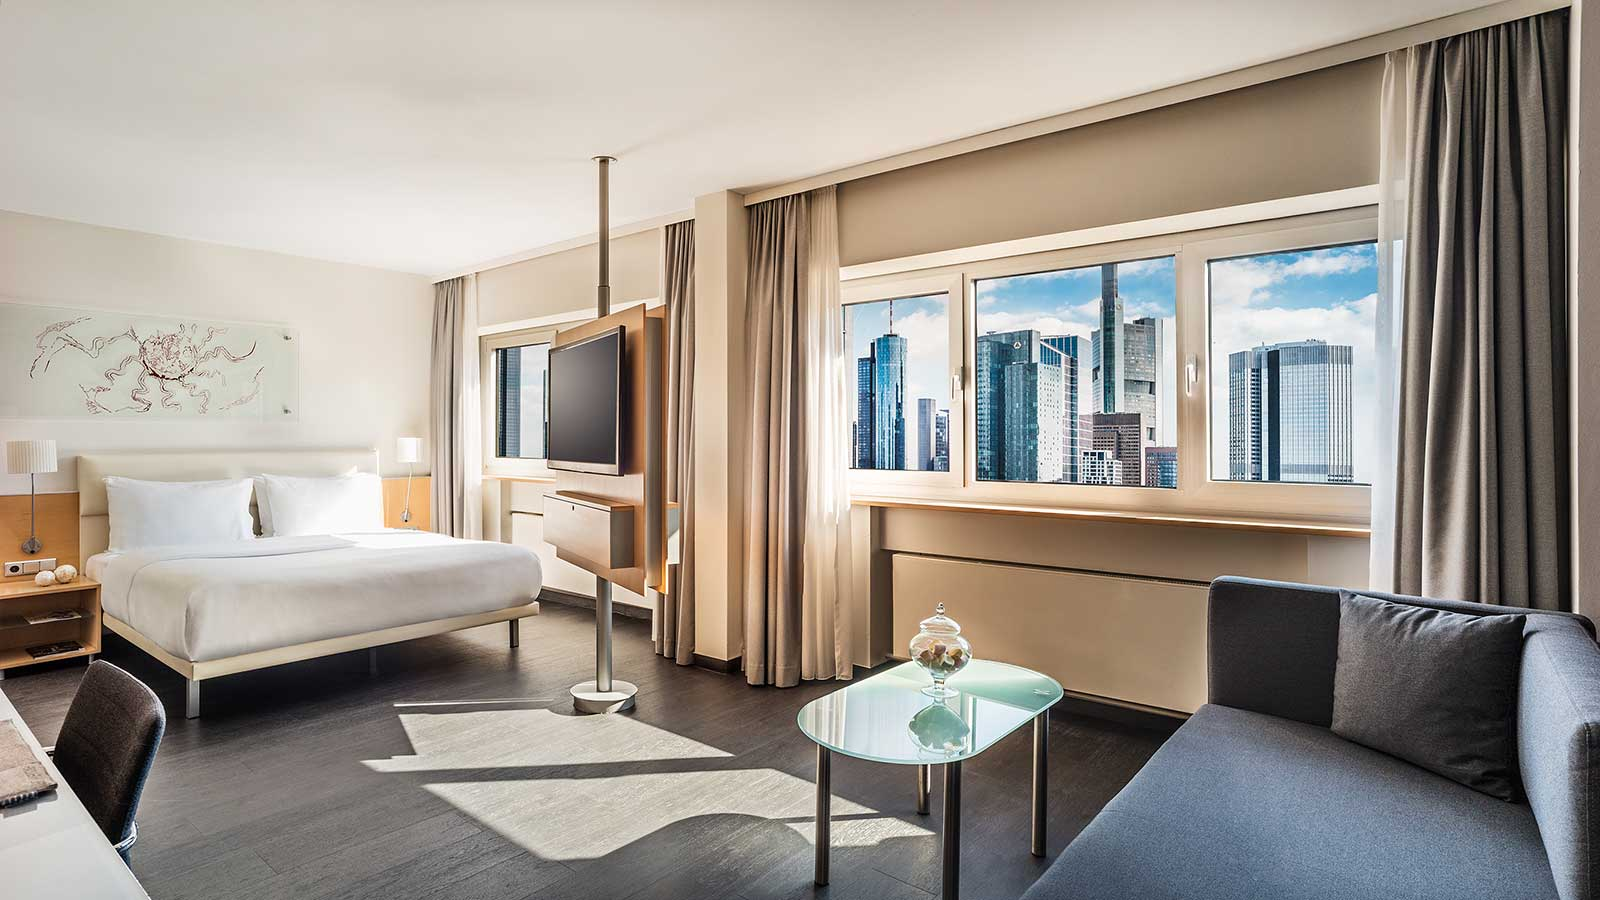 Hotel Room in Frankfurt City Center: Le Méridien with Skyline View